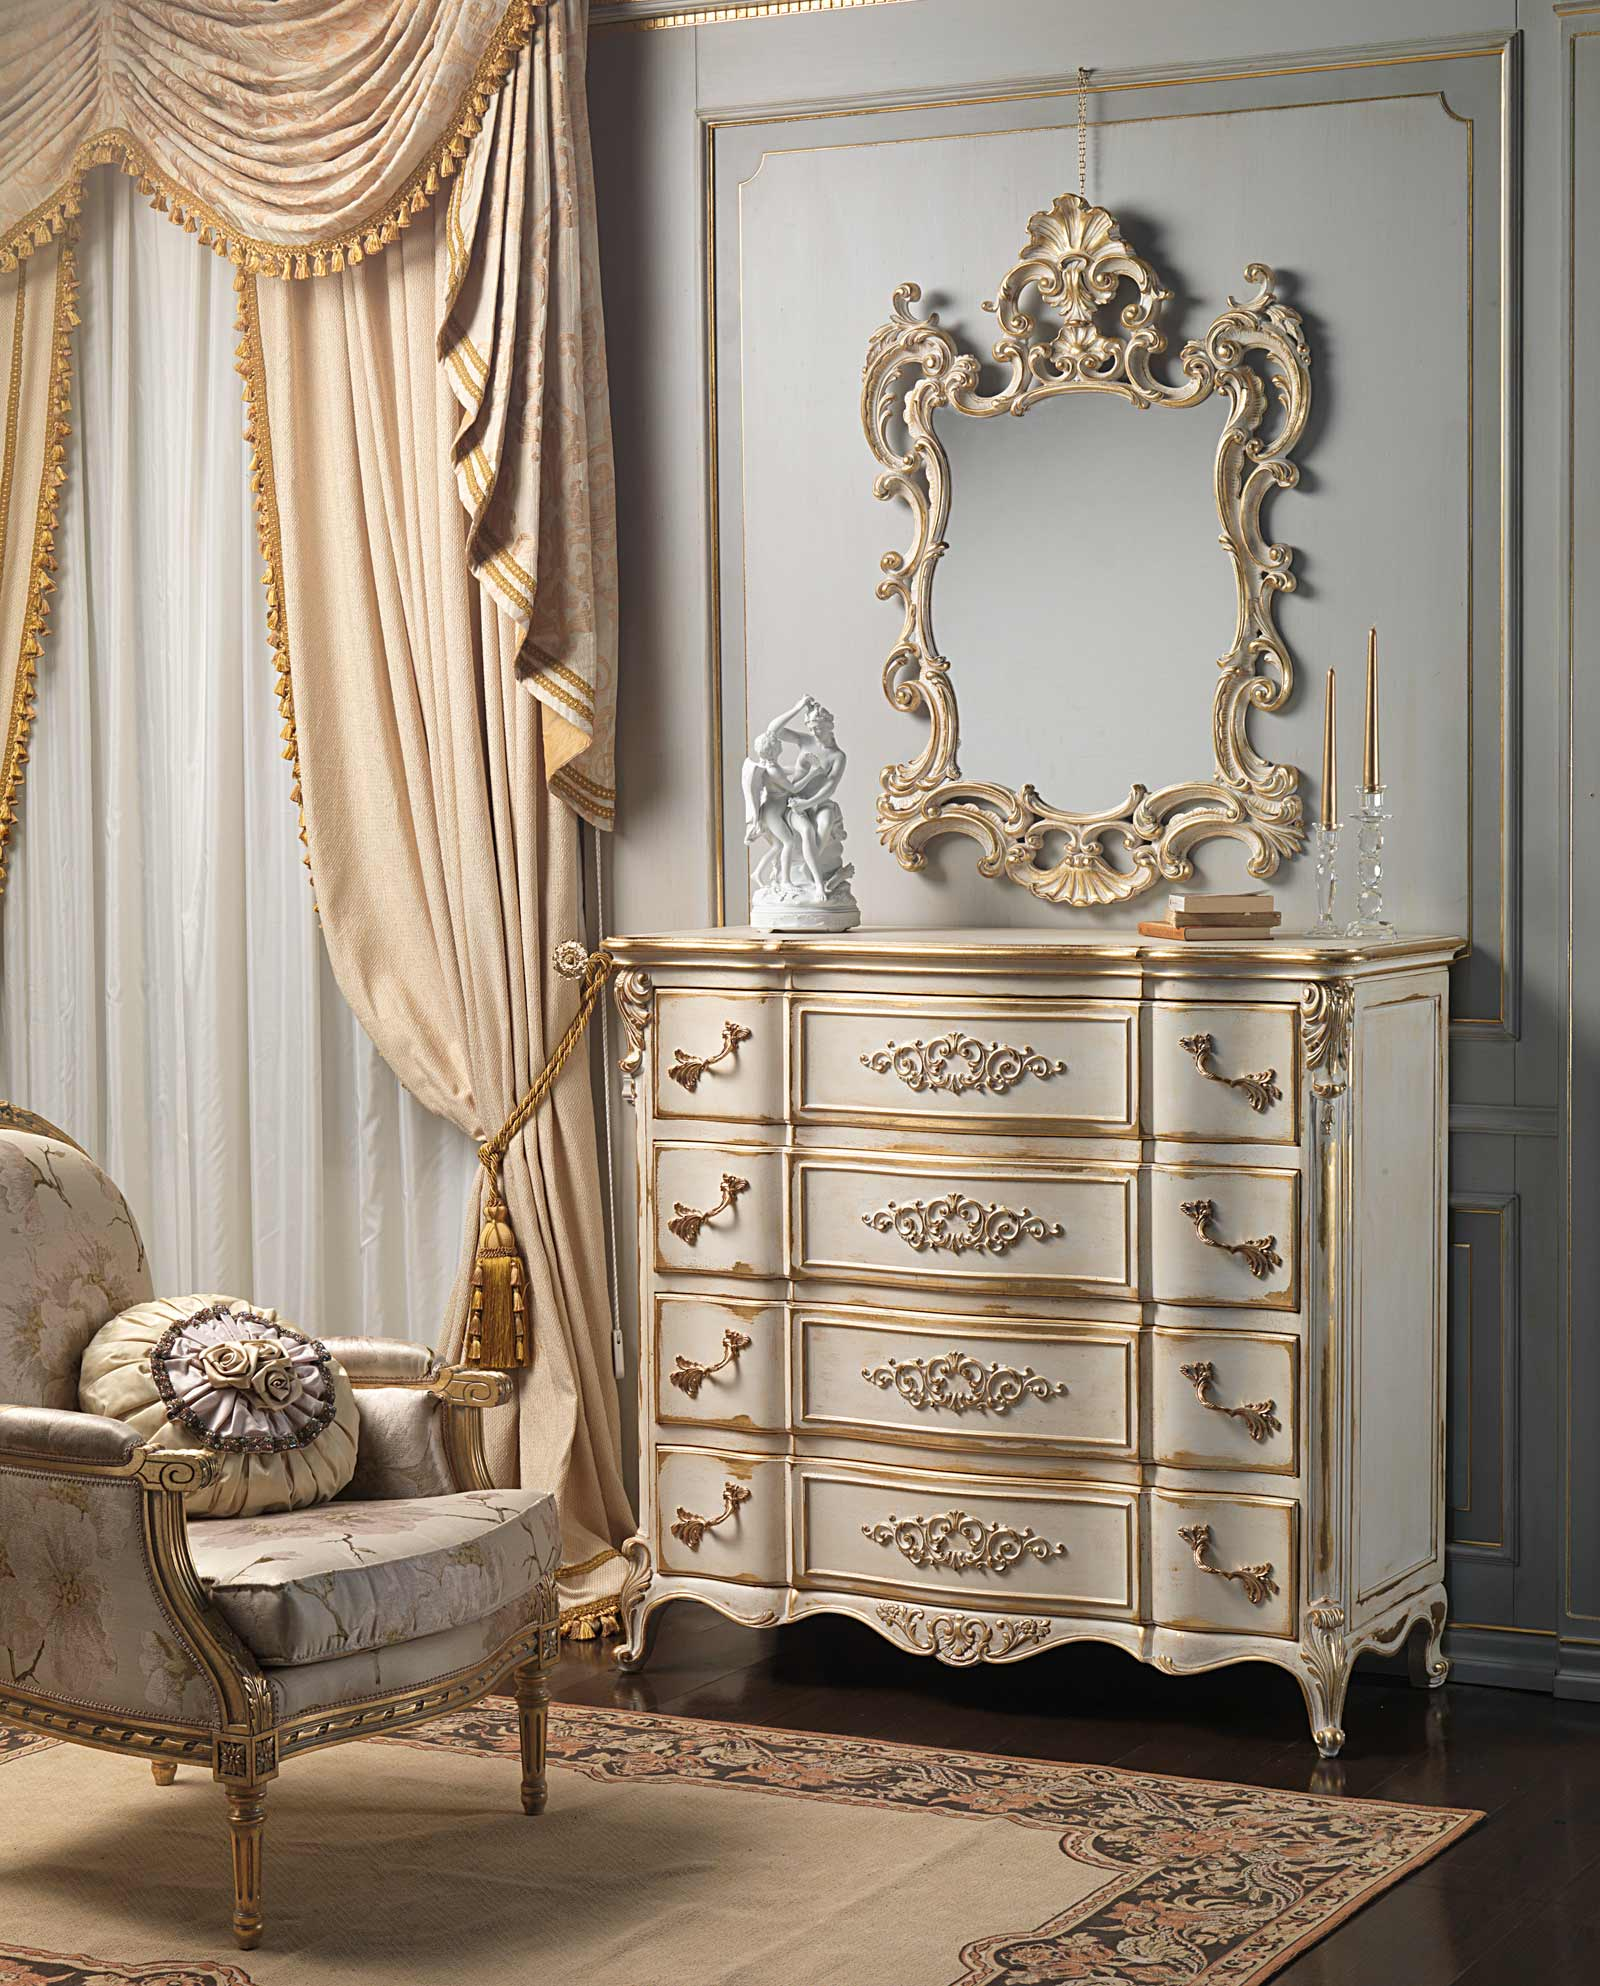 Classic louis xvi bedroom chest of drawers and mirror carved by hand with golden details Home design golden city furniture